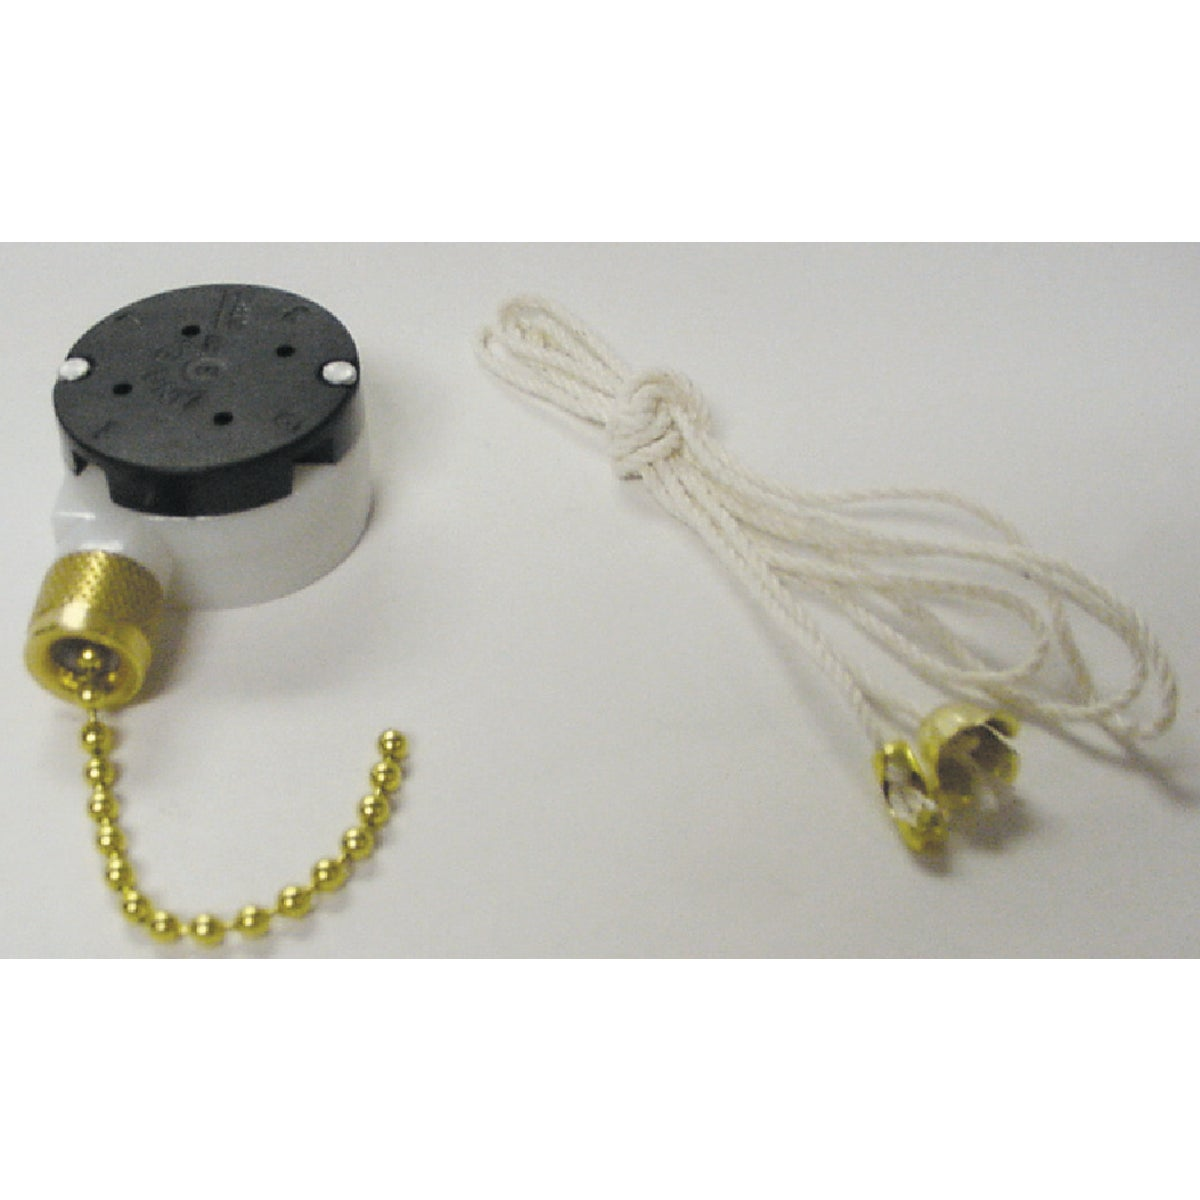 3SPEED PULL CHAIN SWITCH - GSW-34 by G B Electrical Inc